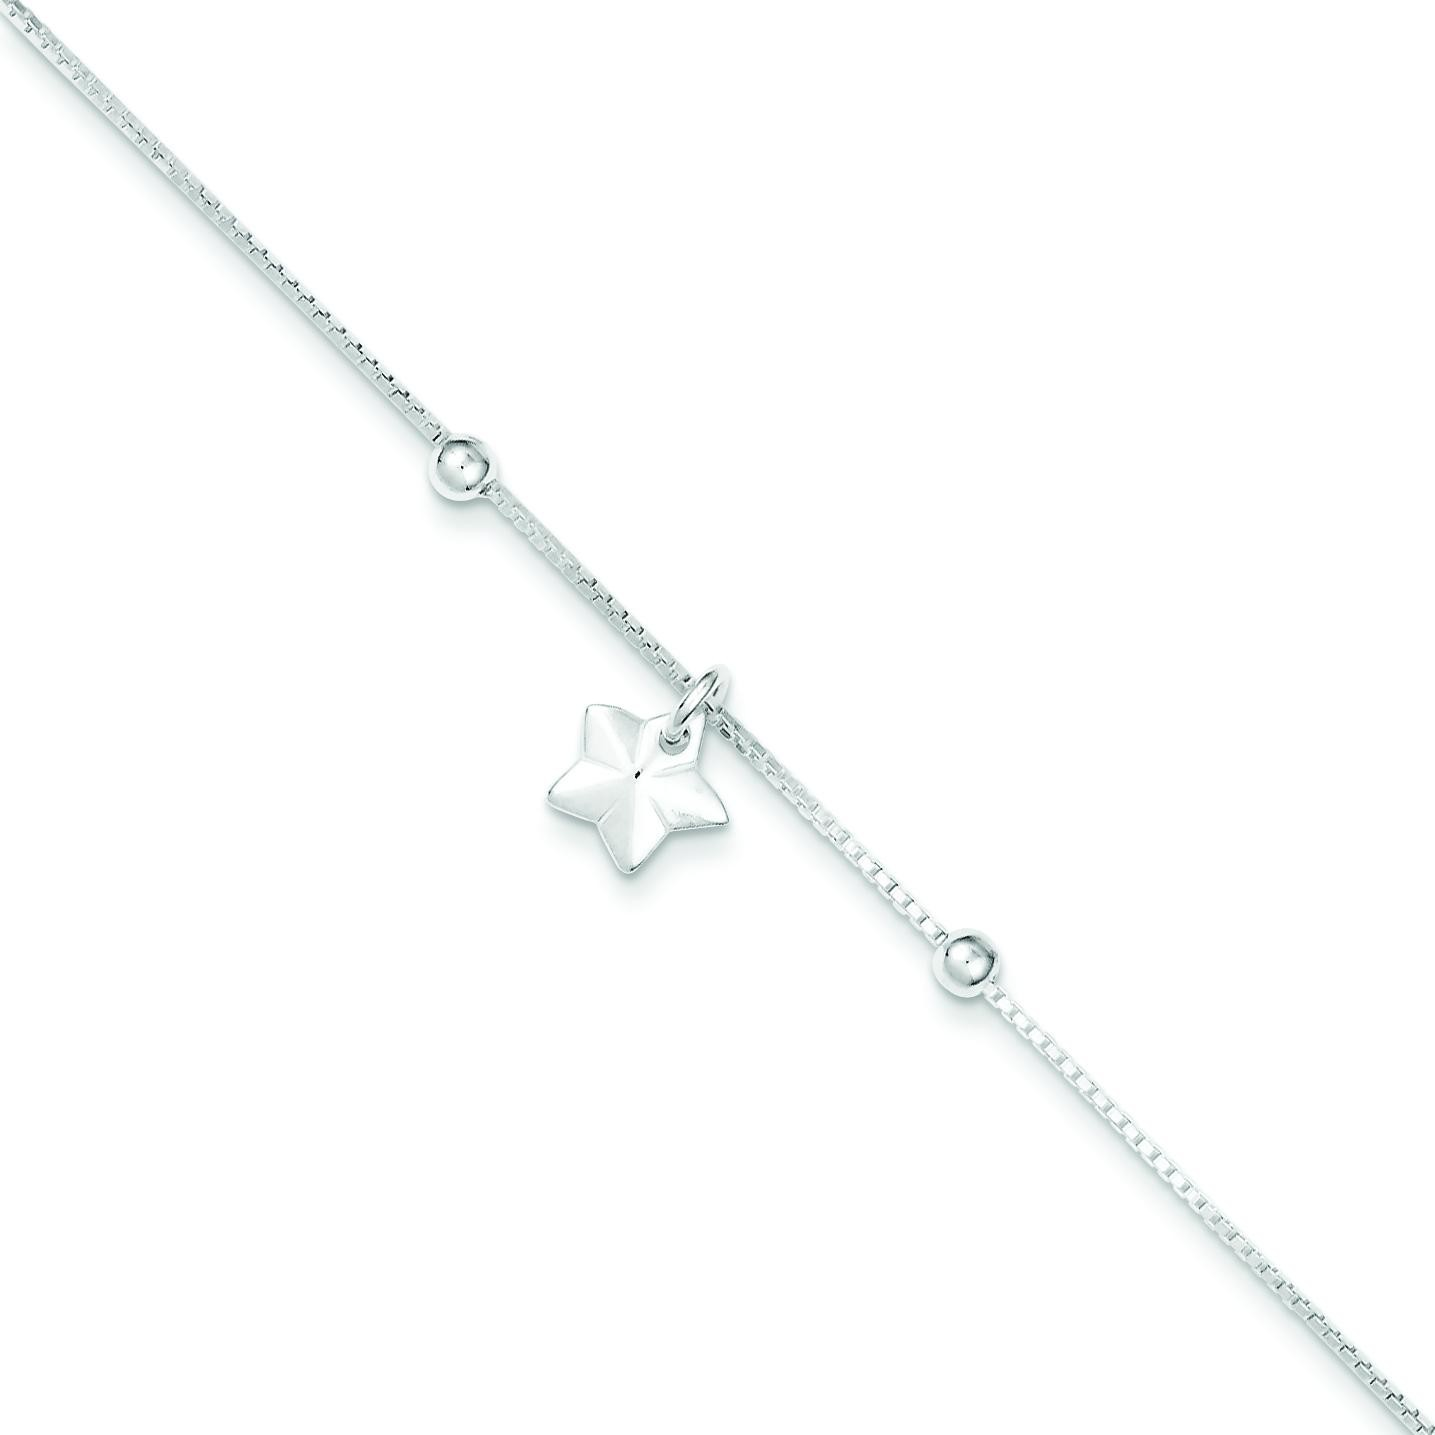 Box Chain Star Anklet in Sterling Silver